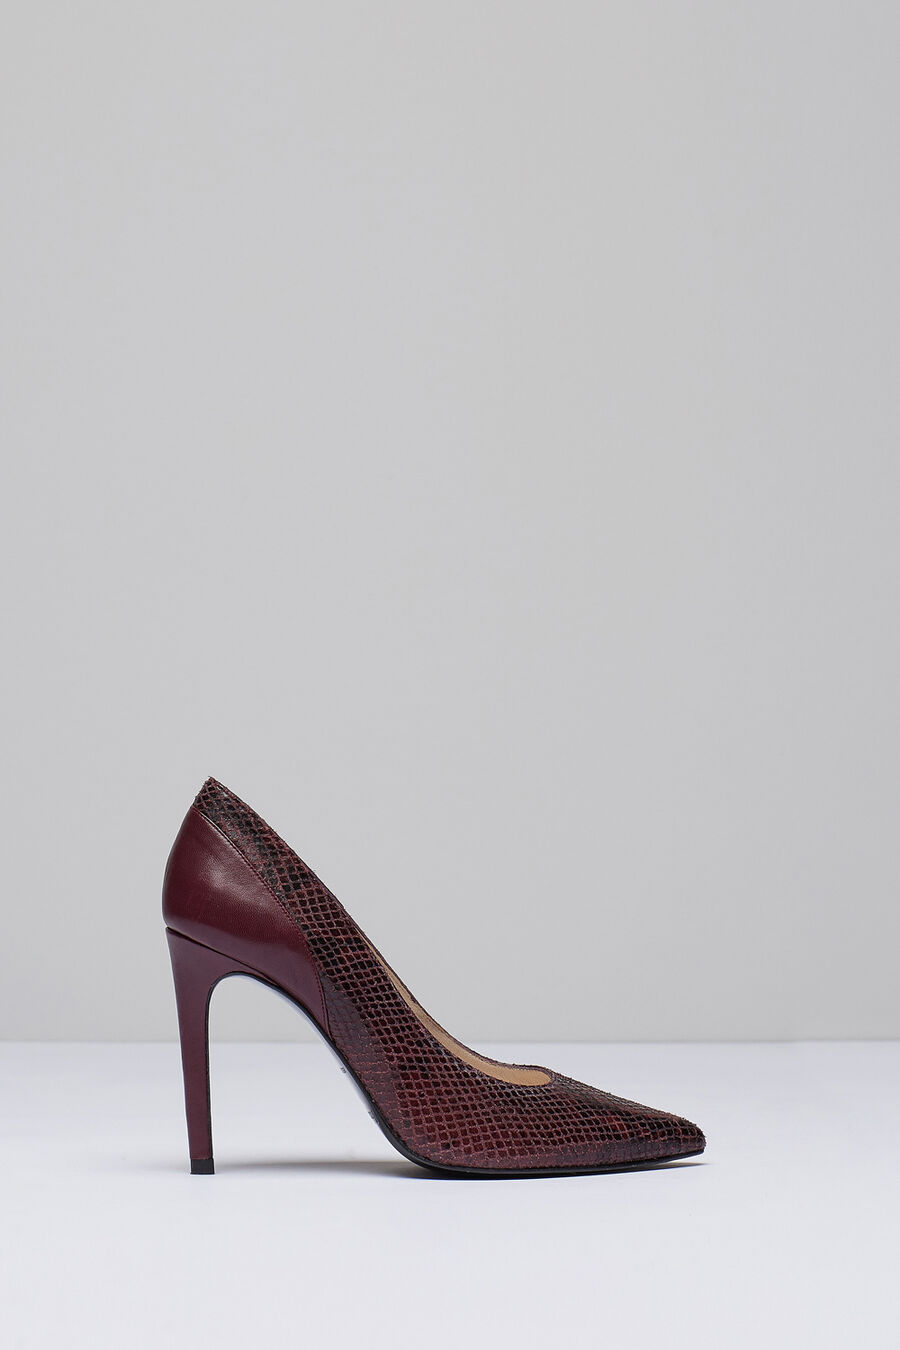 Snakeskin court shoes